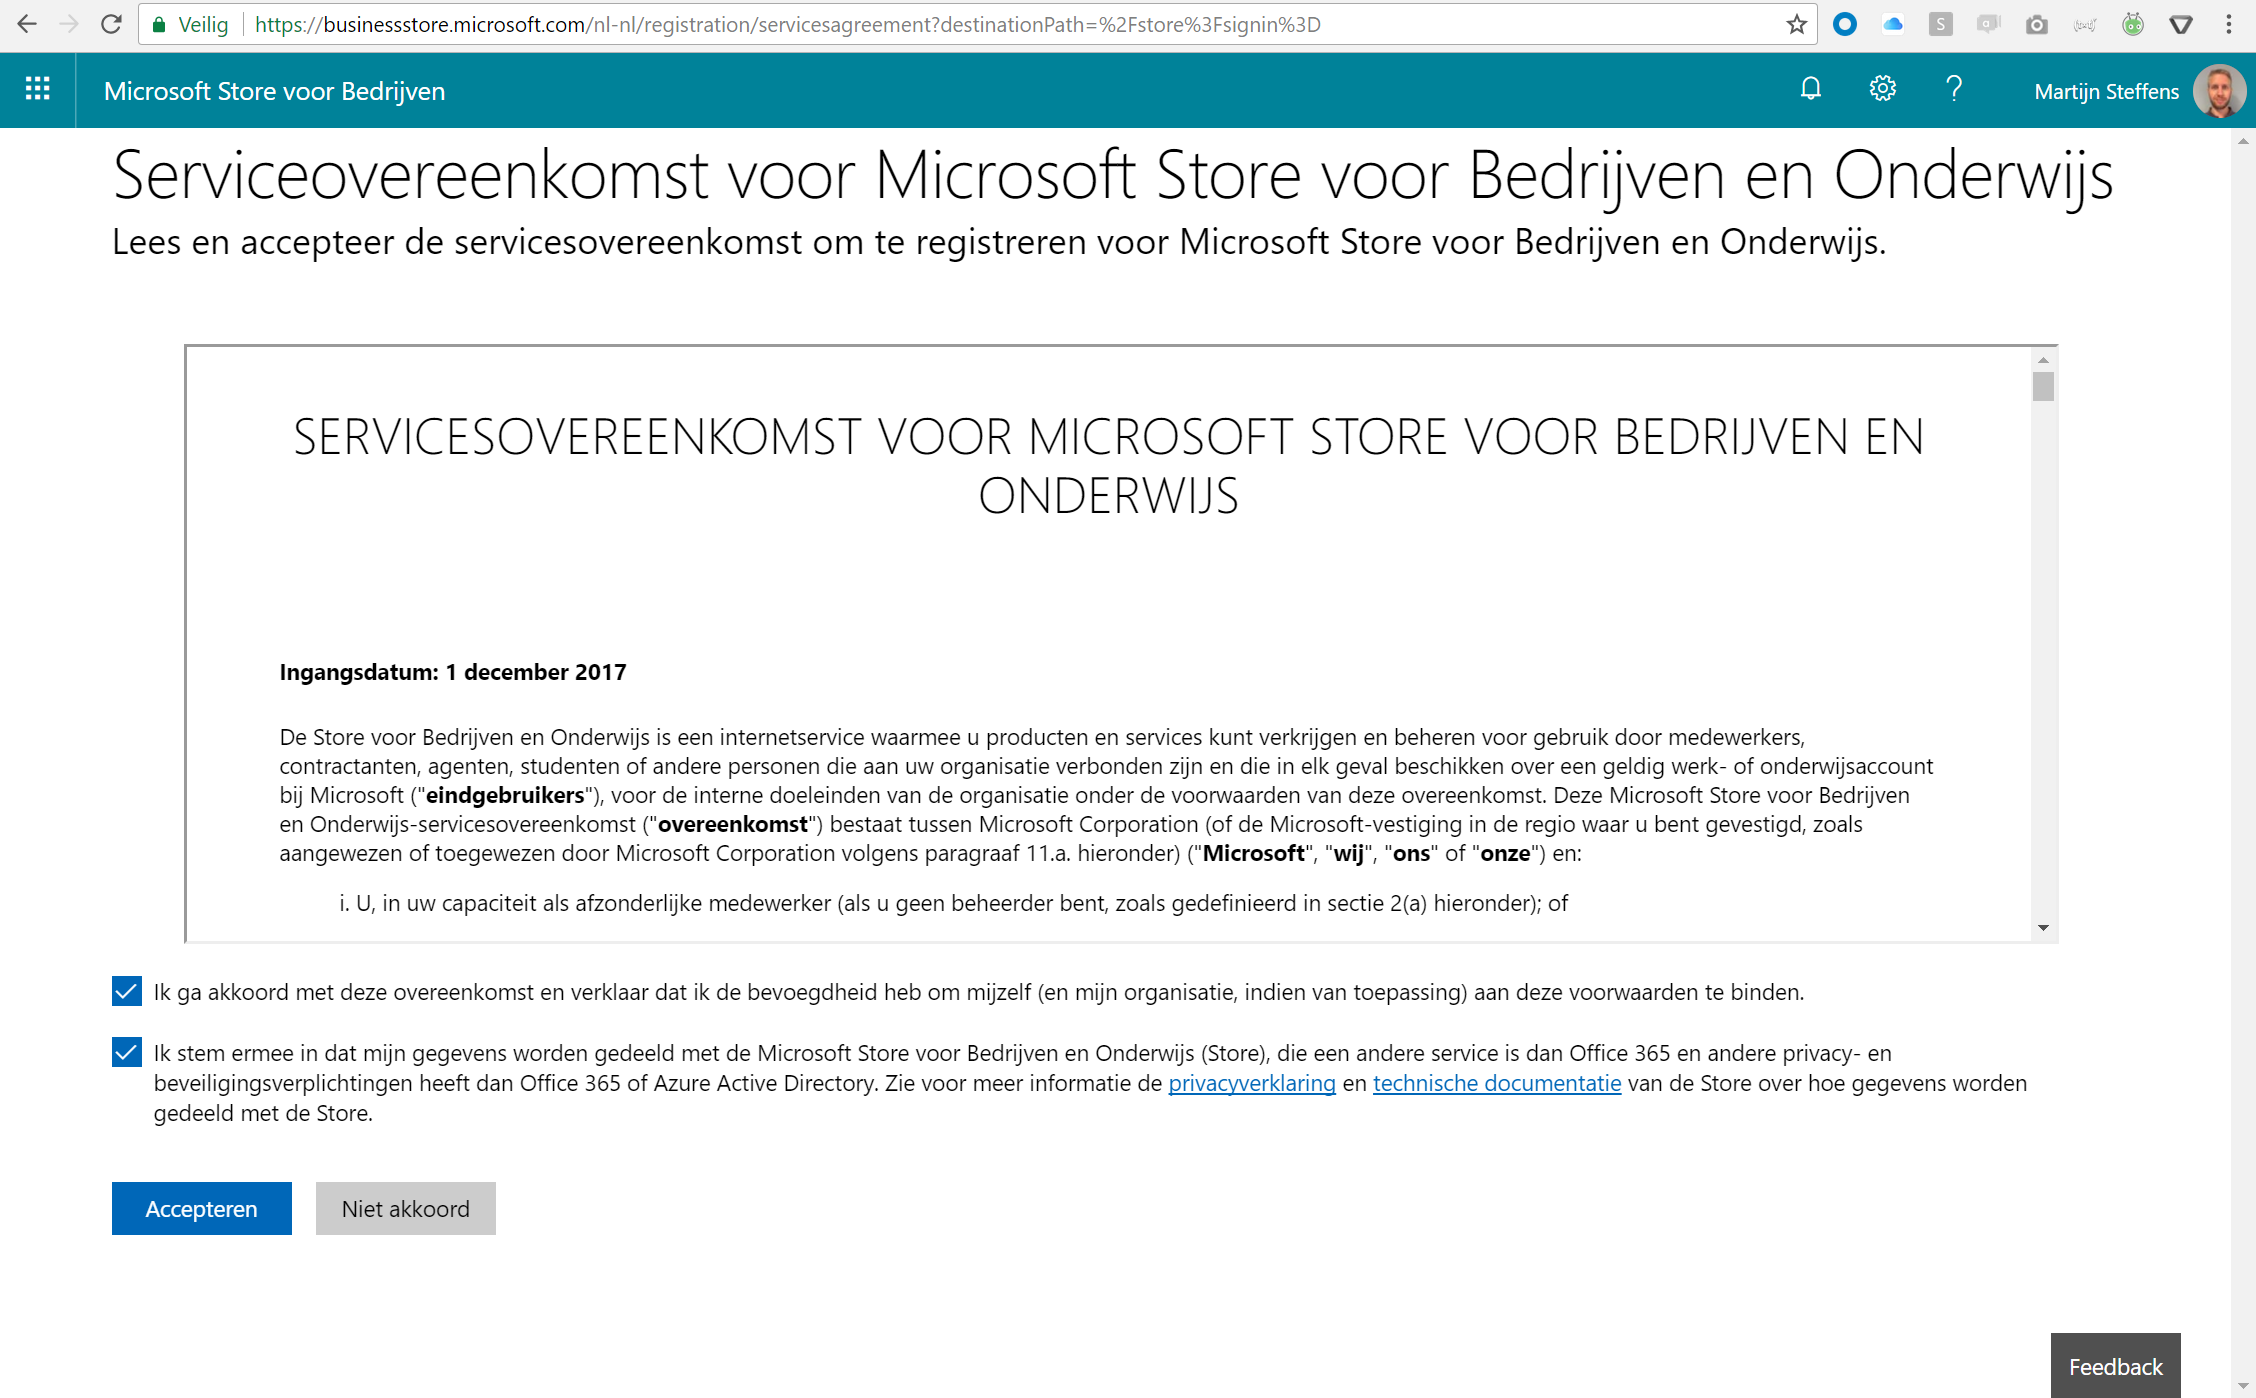 ms_bstore_agreement.PNG